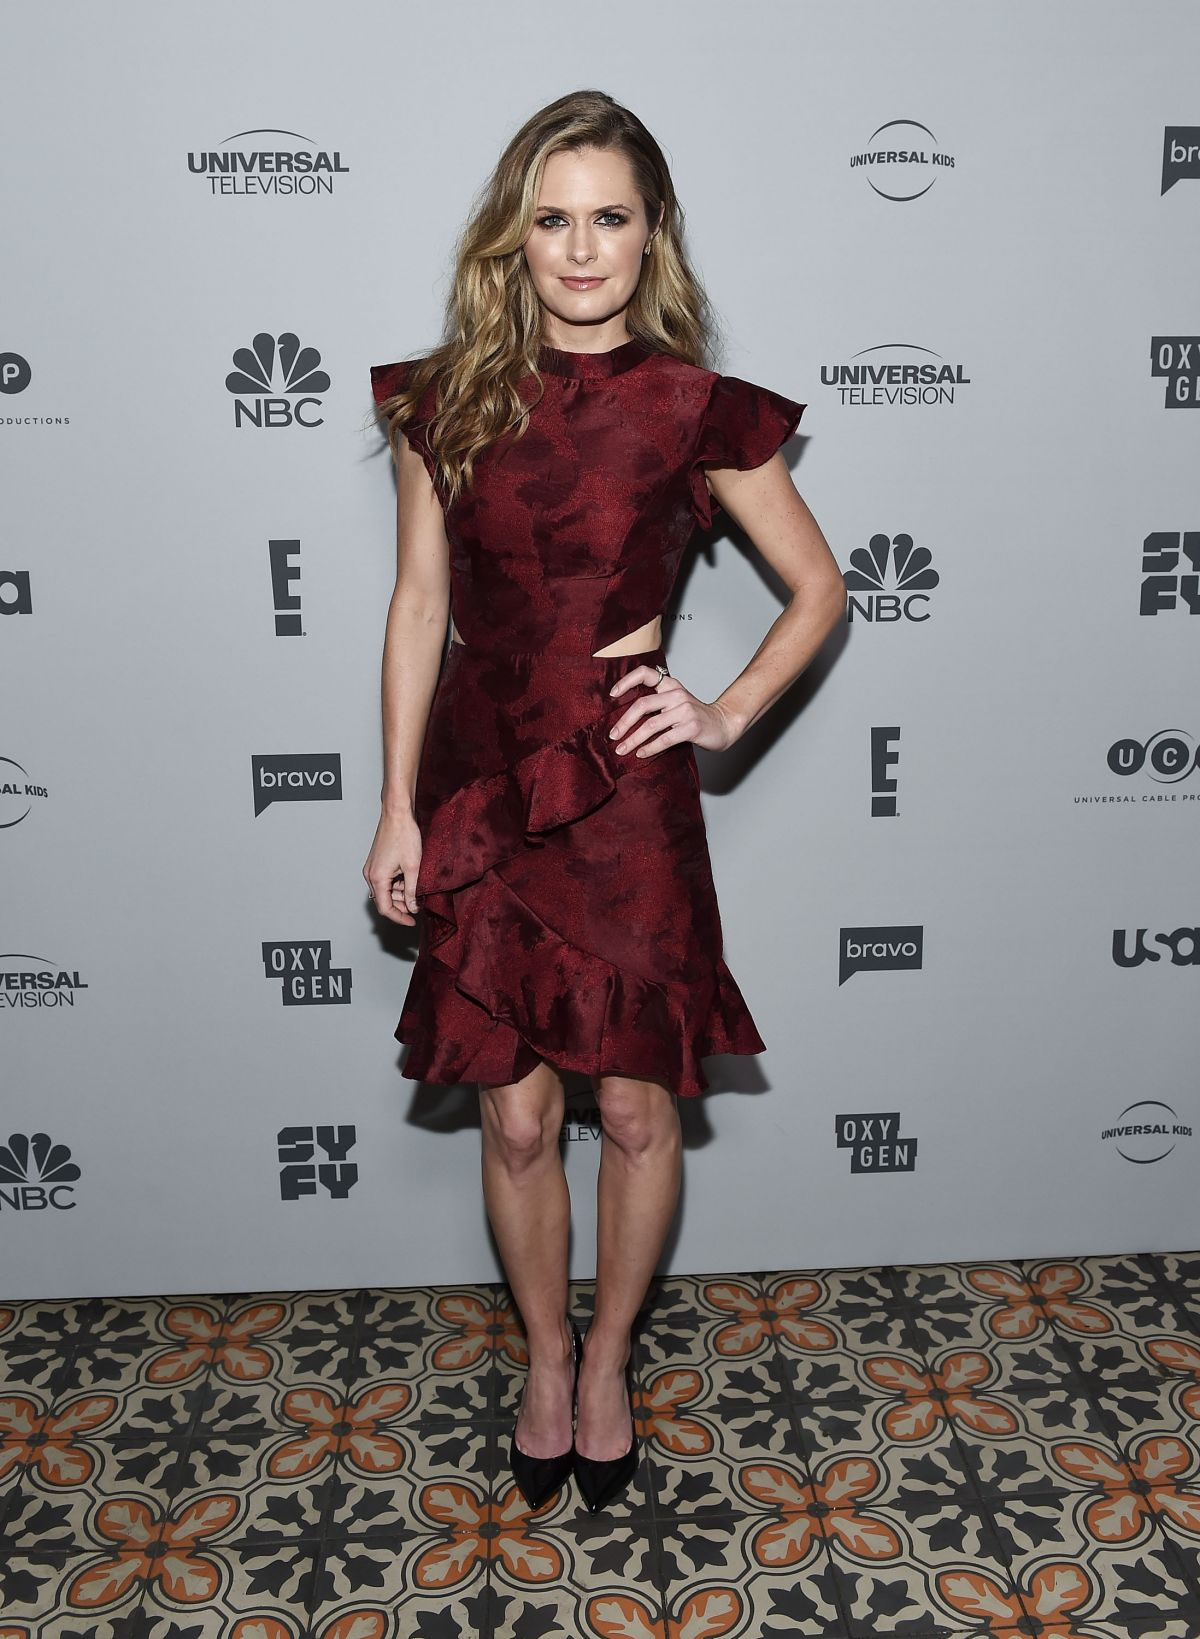 ¿Cuánto mide Maggie Lawson? - Real height Maggie-lawson-at-nbc-universal-s-press-junket-in-los-angeles-11-13-2017-0